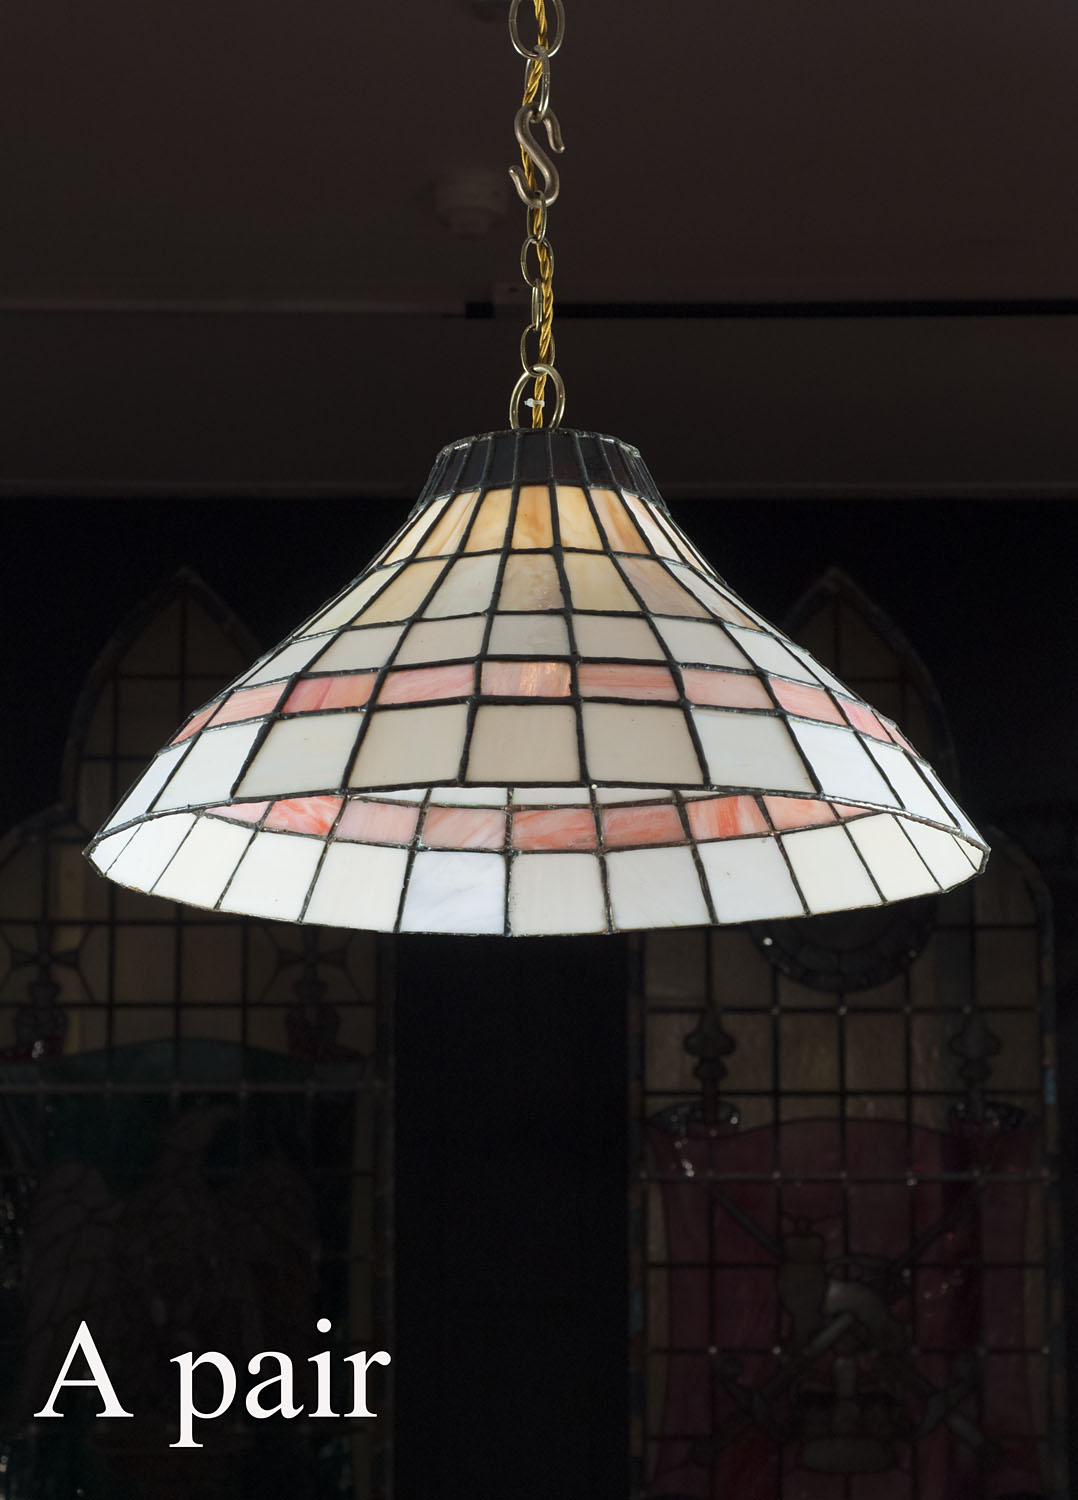 A 20th century pair of Art Deco style ceiling lights